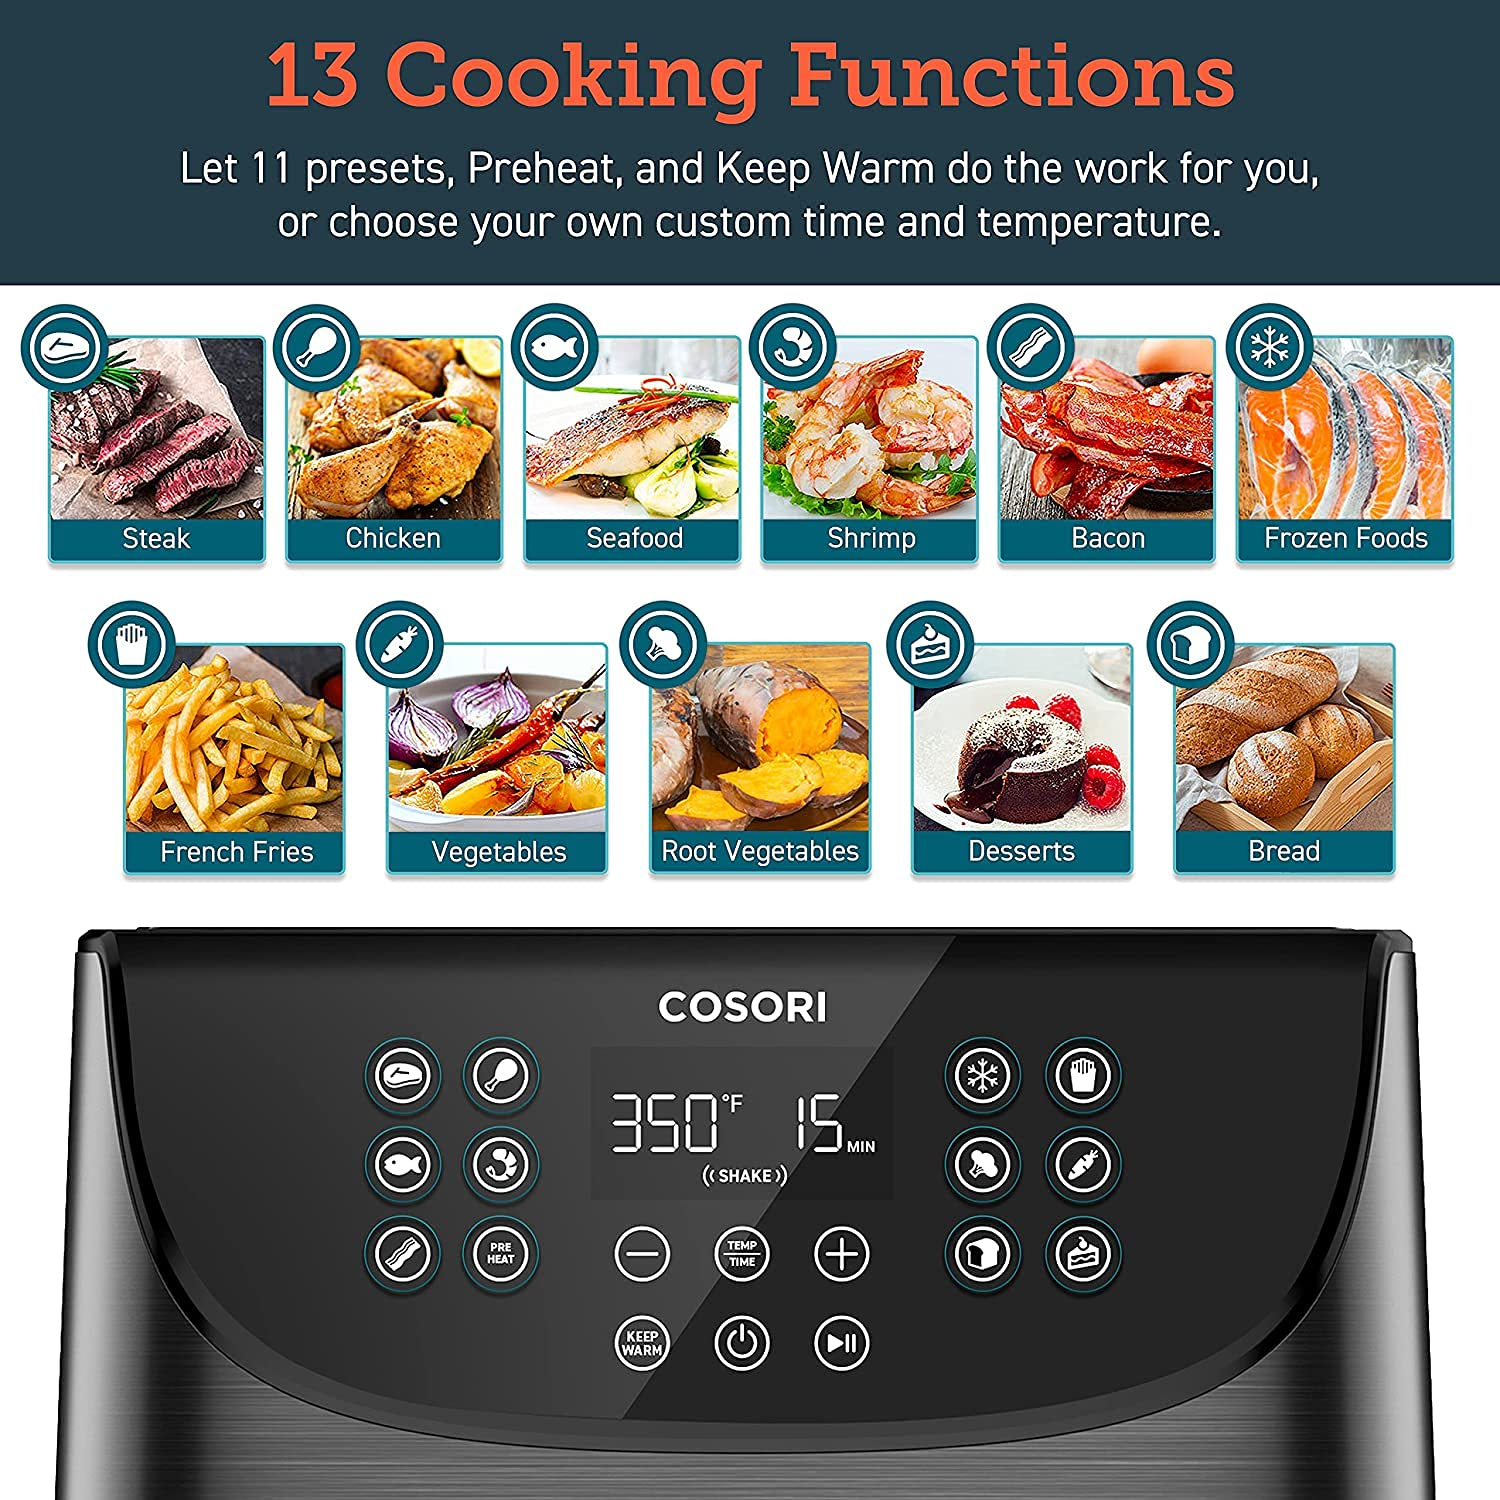 COSORI AirFryerMaxXL(100 Recipes) Digital Hot Oven Cooker, One Touch Screen with 13 Cooking Functions, Preheat and Shake Reminder, 5.8 QT, Black